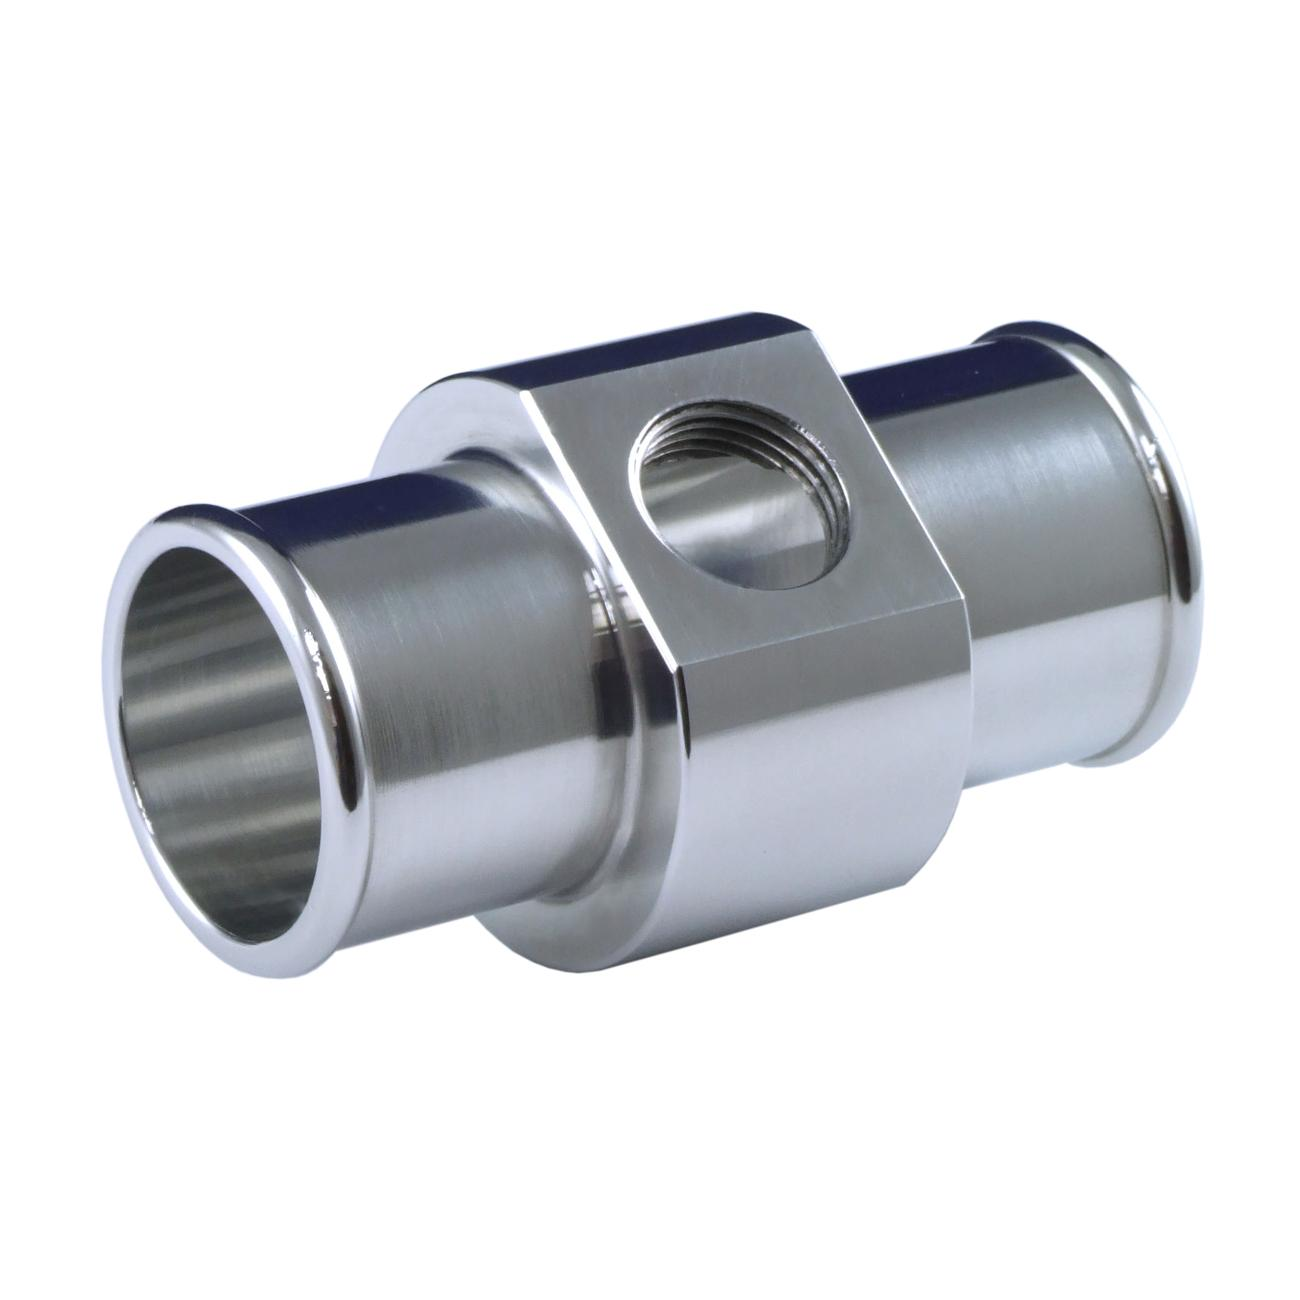 32mm Aluminium-Schlauch-Adapter